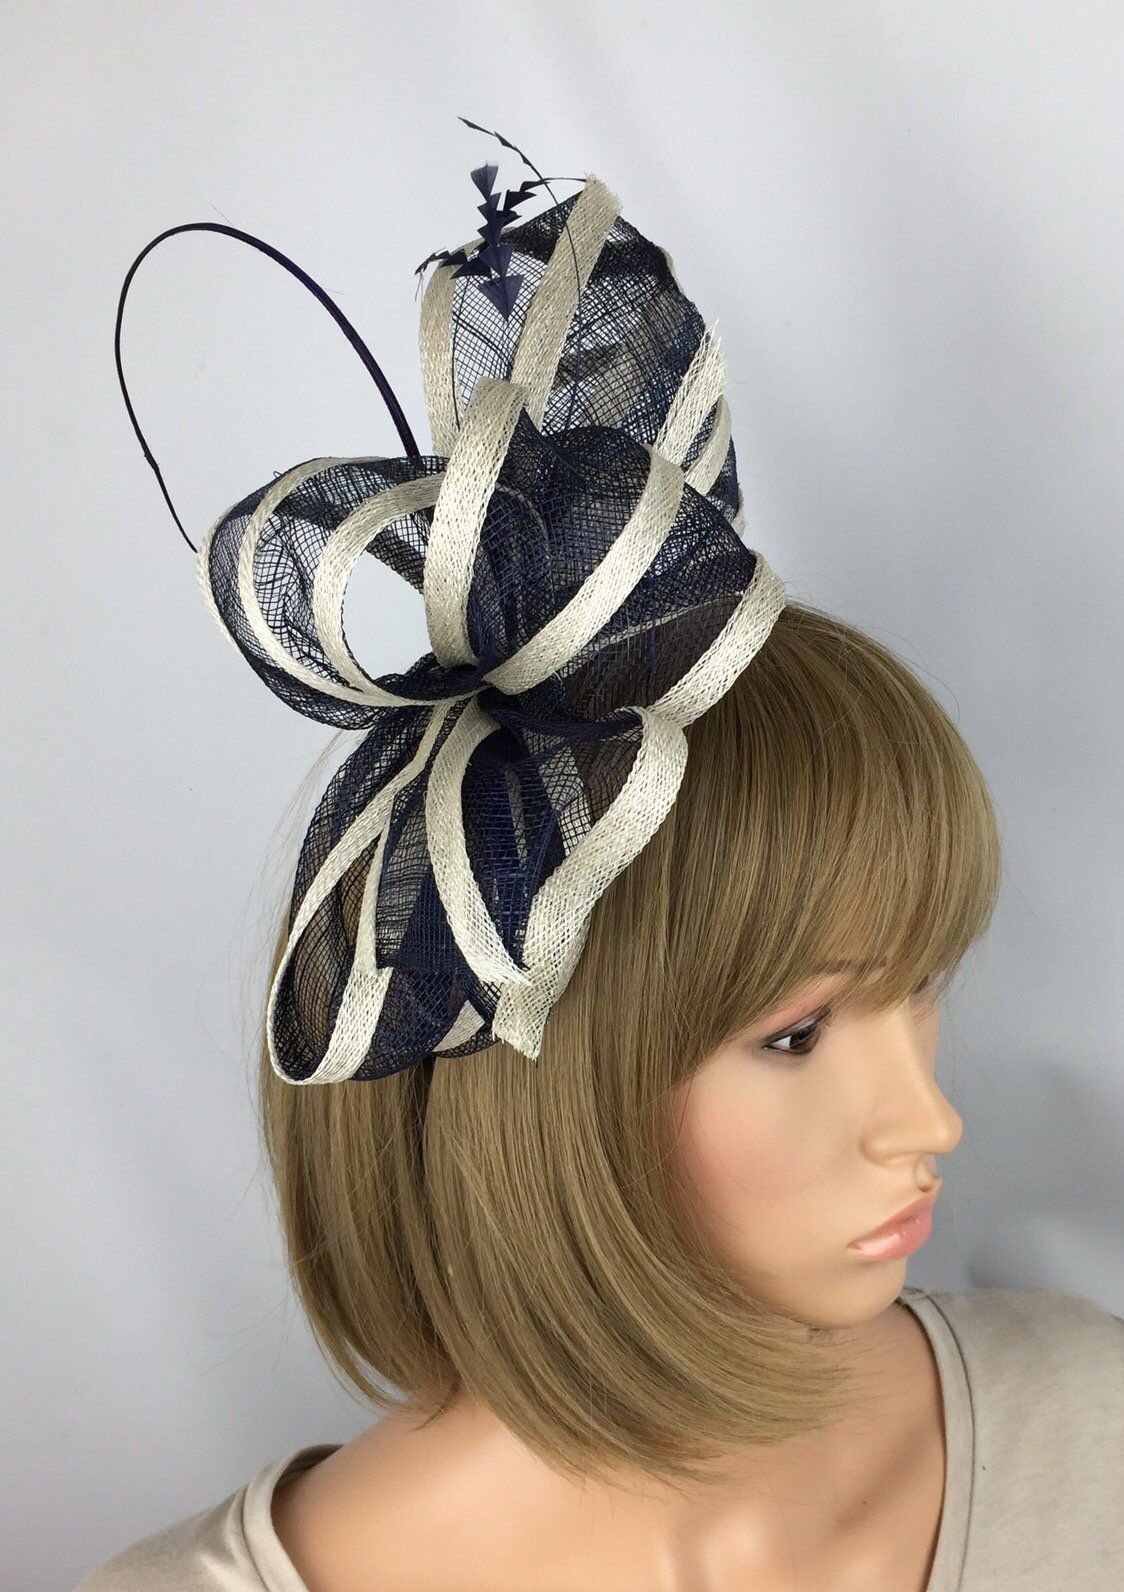 c40c8928 Navy Blue and White Fascinator Wedding Mother of the Bride Ladies Day &  Ascot Races Occasion Event in 2019 | Pretty Elegant 1 | White fascinator,  Blue, ...